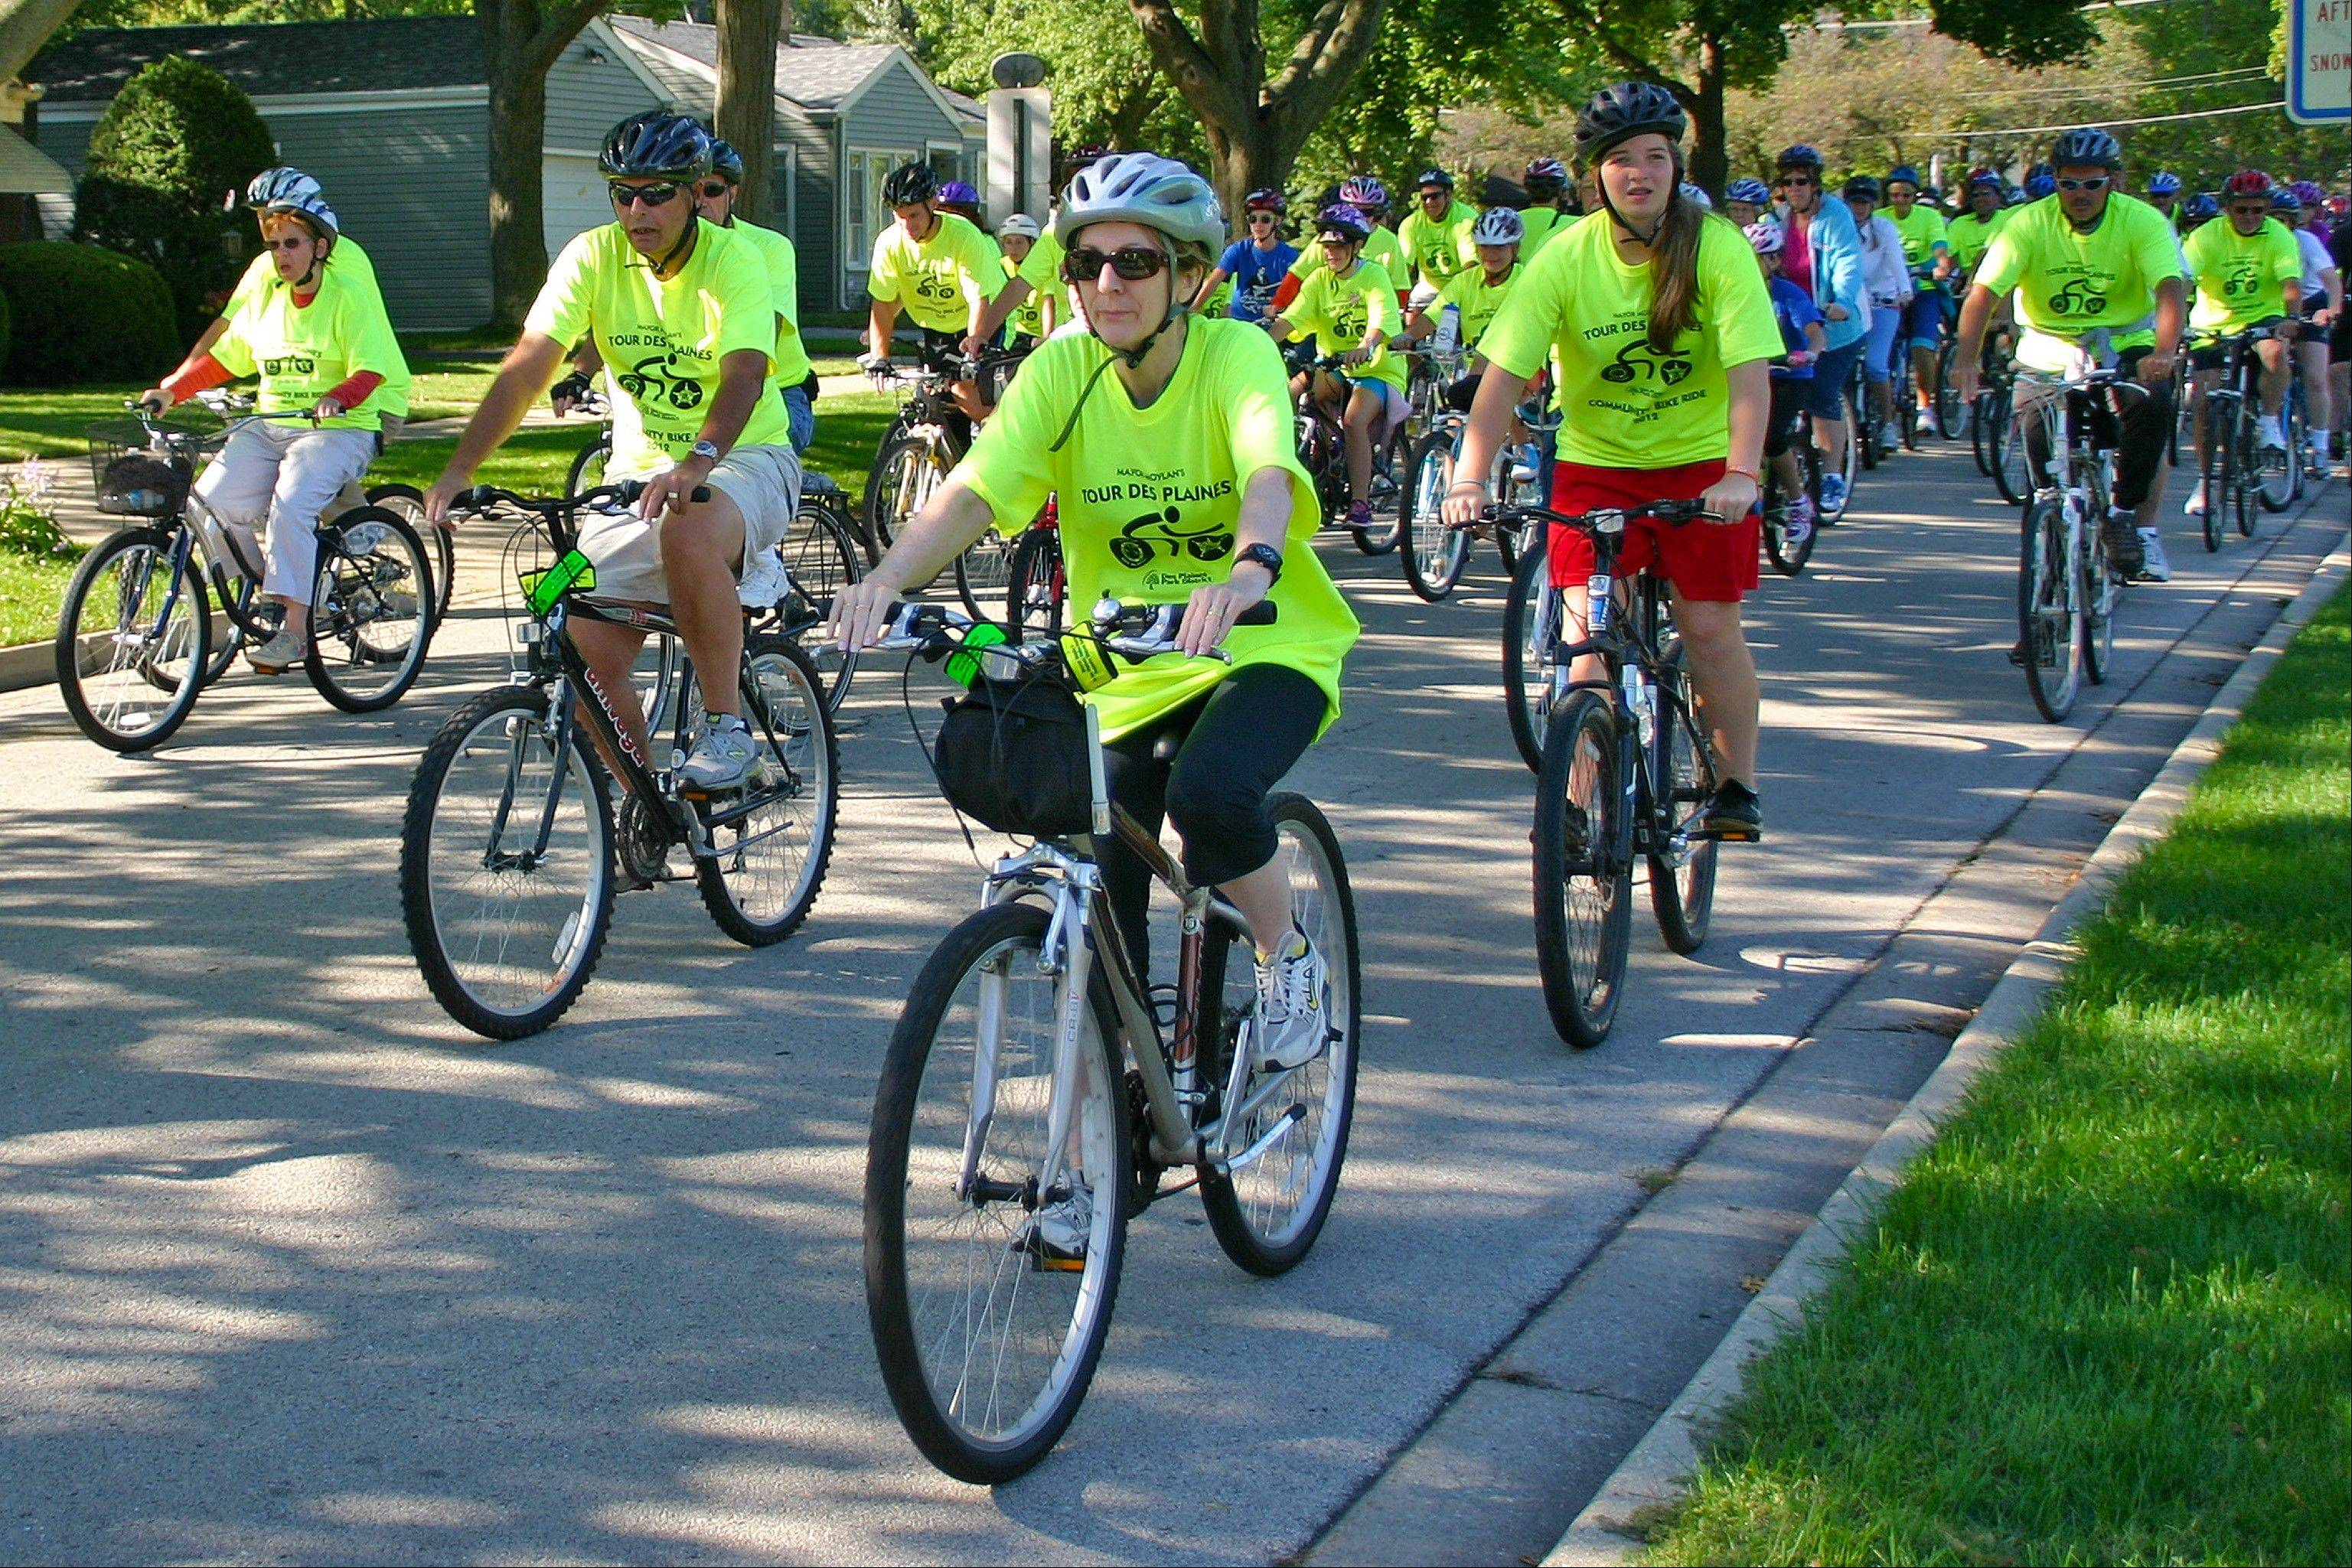 The annual Tour Des Plaines Bike Ride, which drew about 300 participants Saturday morning, leaves West Park, the first rest stop on the ride. The Tour is nine miles, ending with a beautiful ride up the bike trail around Lake Opeka on its return to the starting point at the Lake Park Clubhouse.